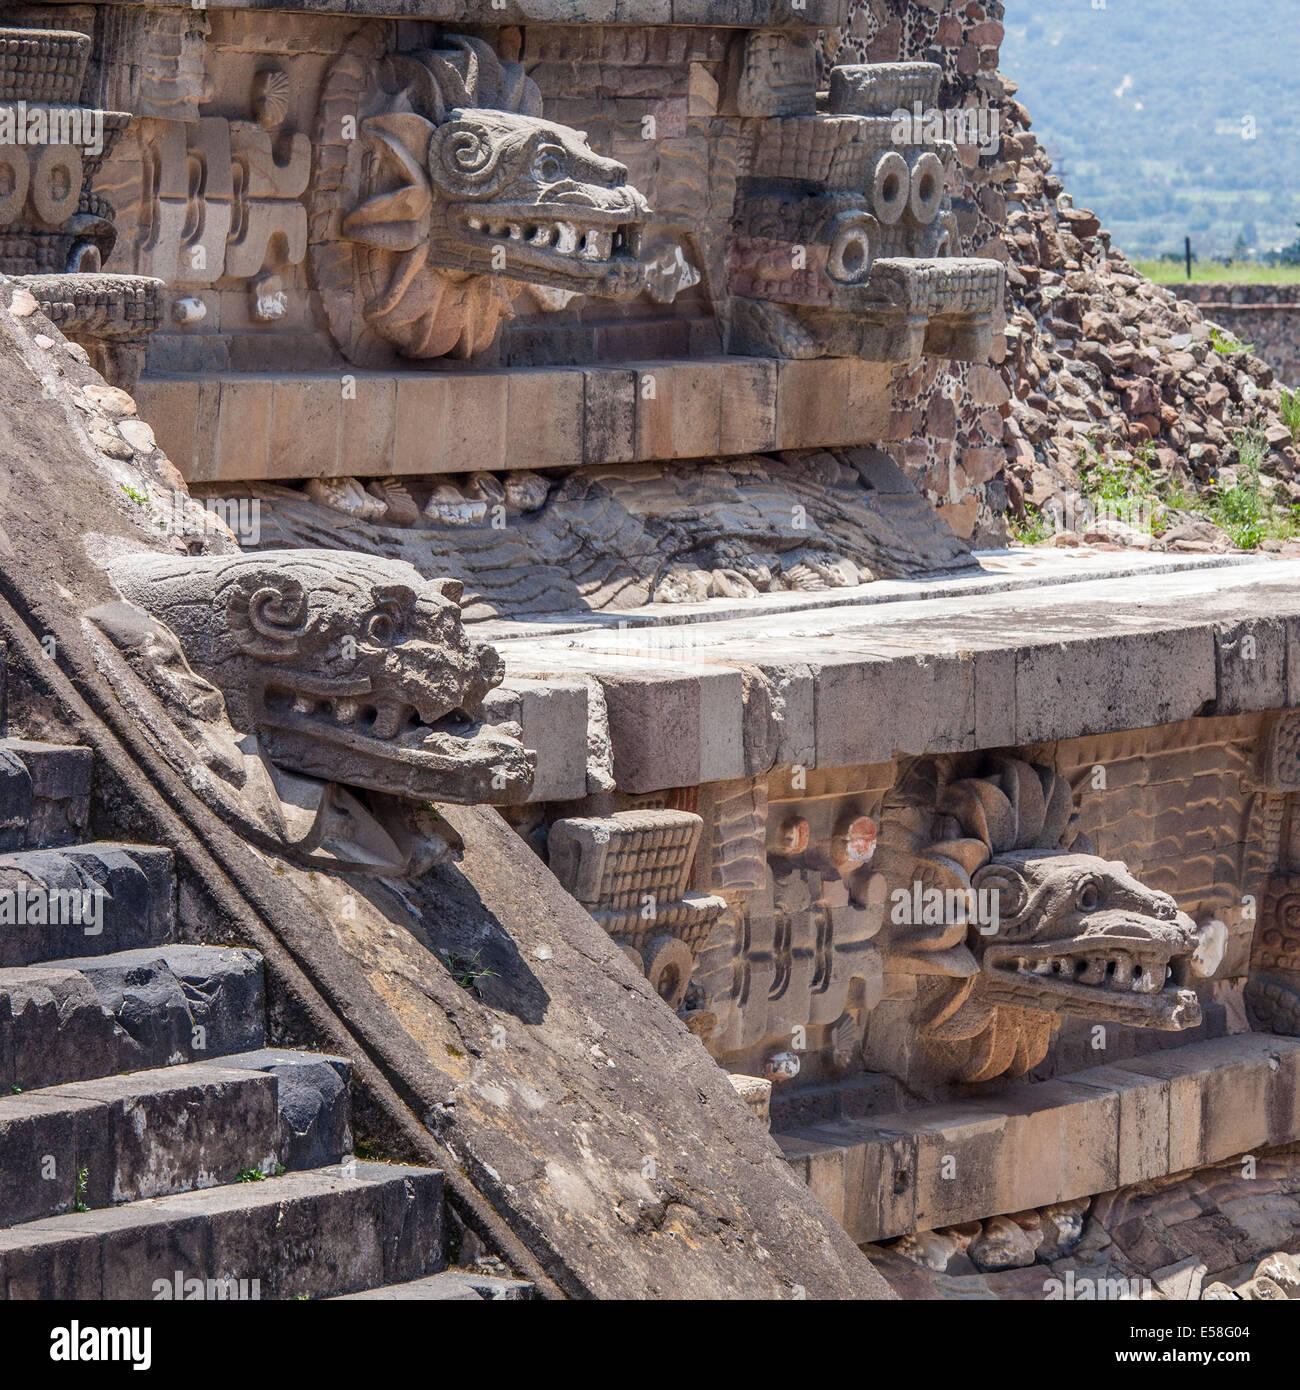 Serpent heads on the temple of Quetzalcoatl at Teotihuacan, Mexico. - Stock Image